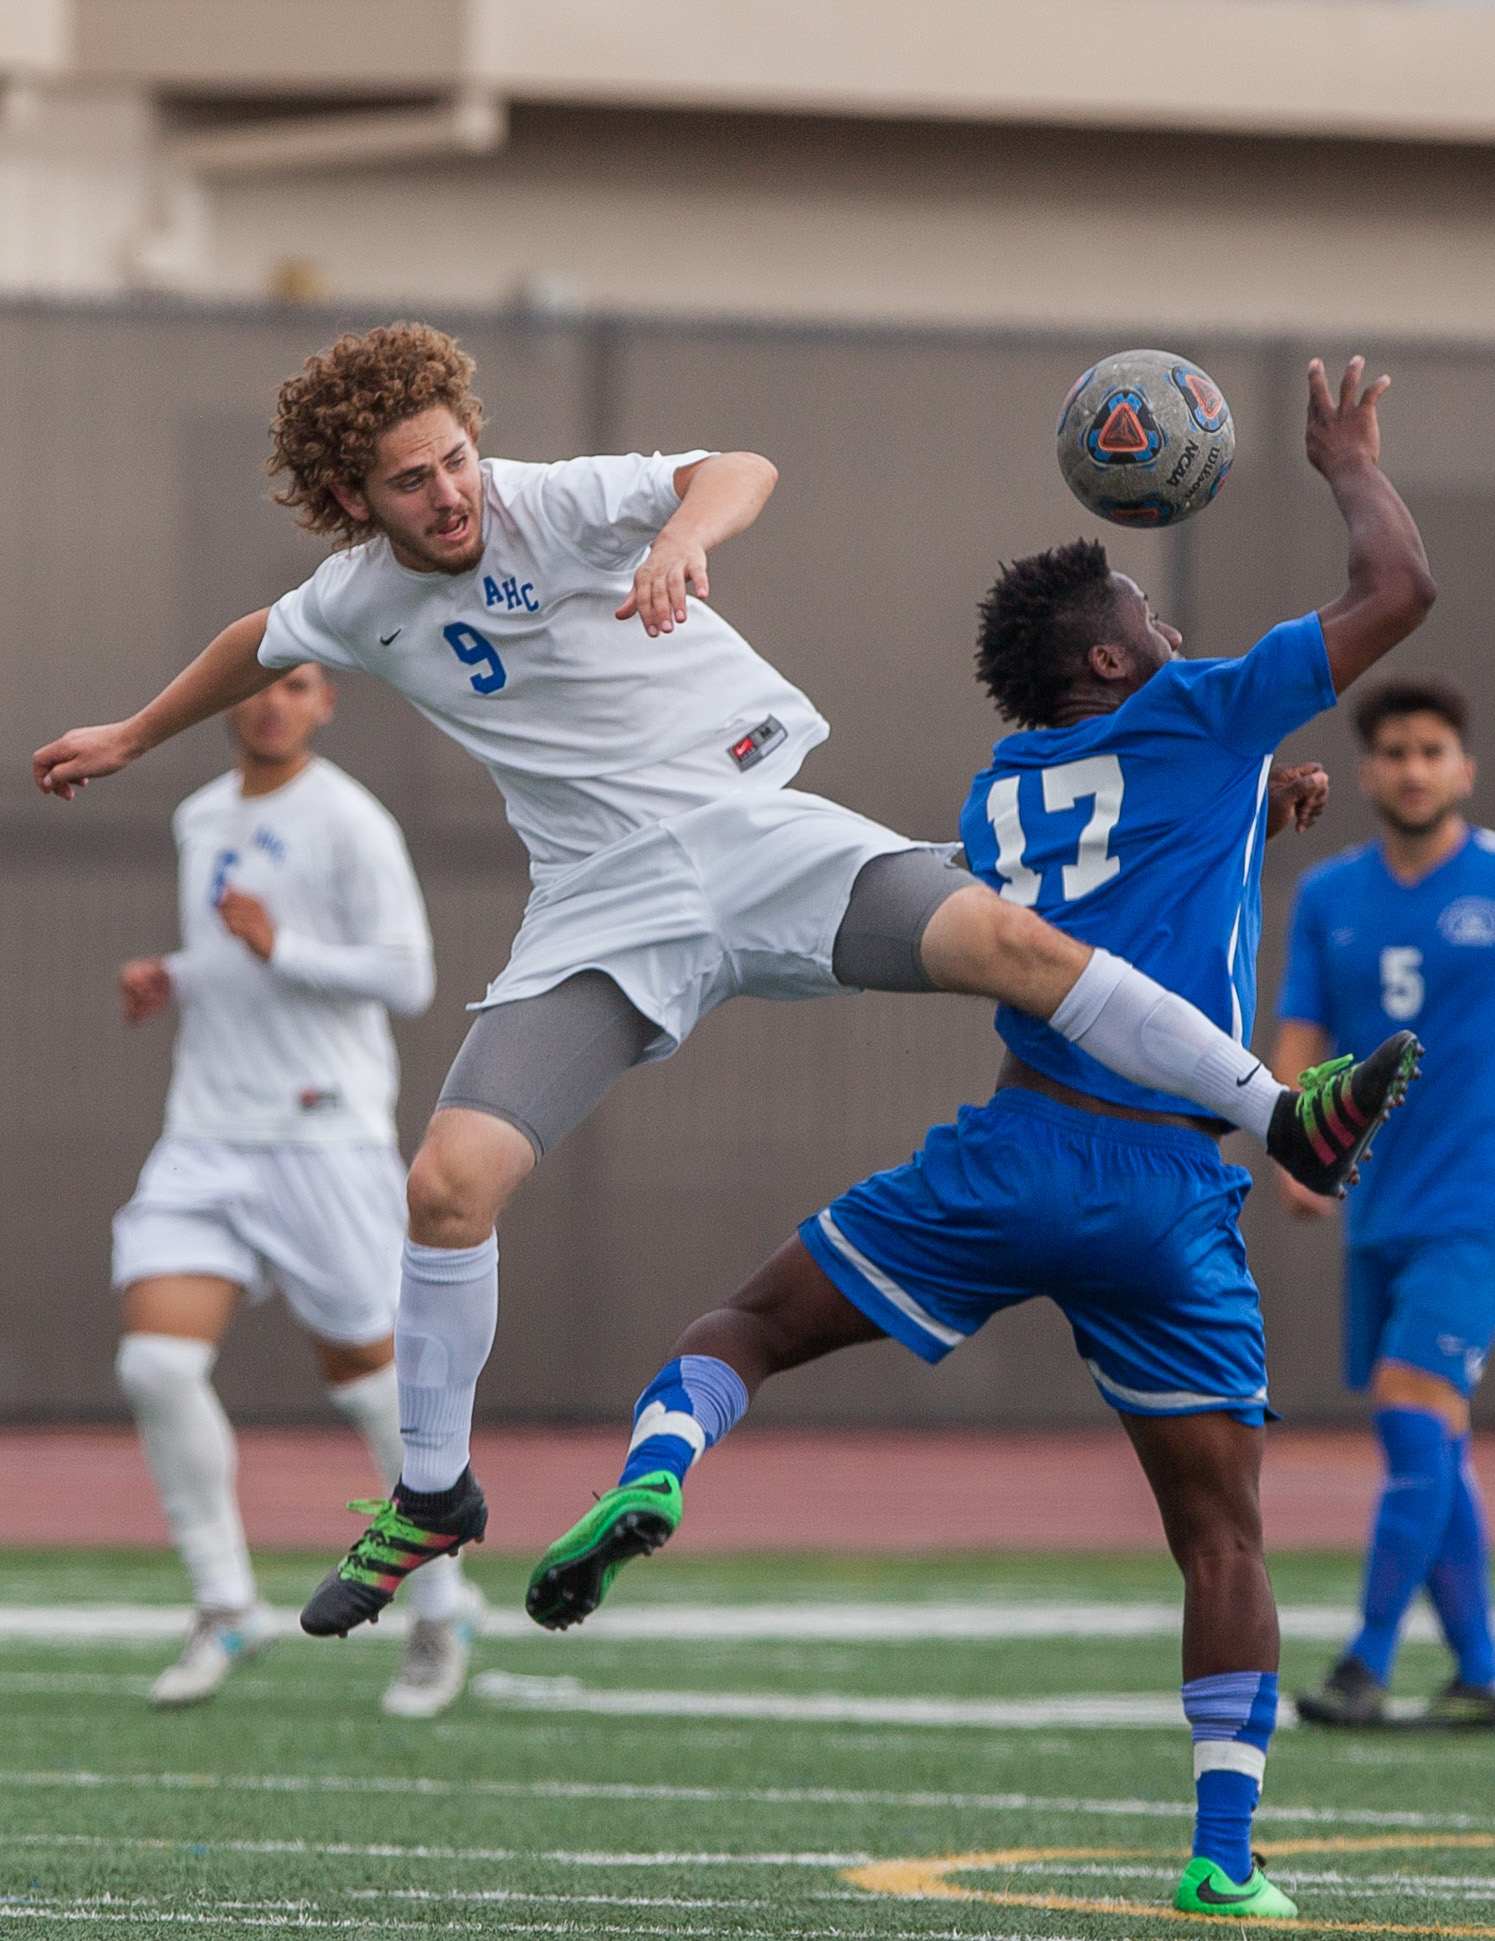 Cyrille Njomo (17) of the Santa Monica College jumps up to perform the ball. The game ended 1-1 resulting in a tie. The game was held at the Corsair Stadium at the Santa Monica College Main Campus in Santa Monica, California, on 31st of October, 2017. (Photo by: Elena Rybina)